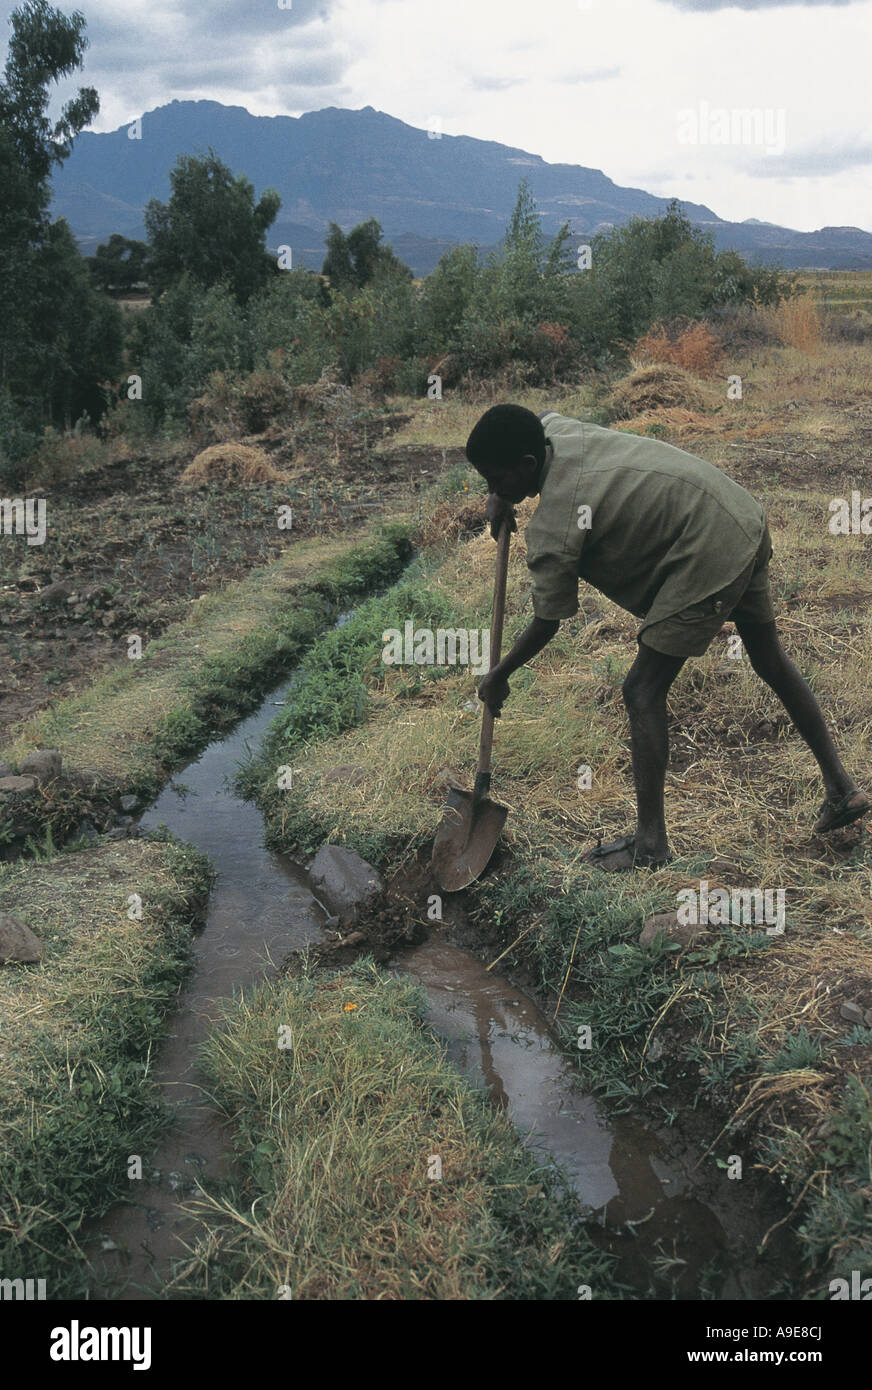 Boy working hard to irrigate banana trees and crops United Nations Project Sekota Ethiopia - Stock Image